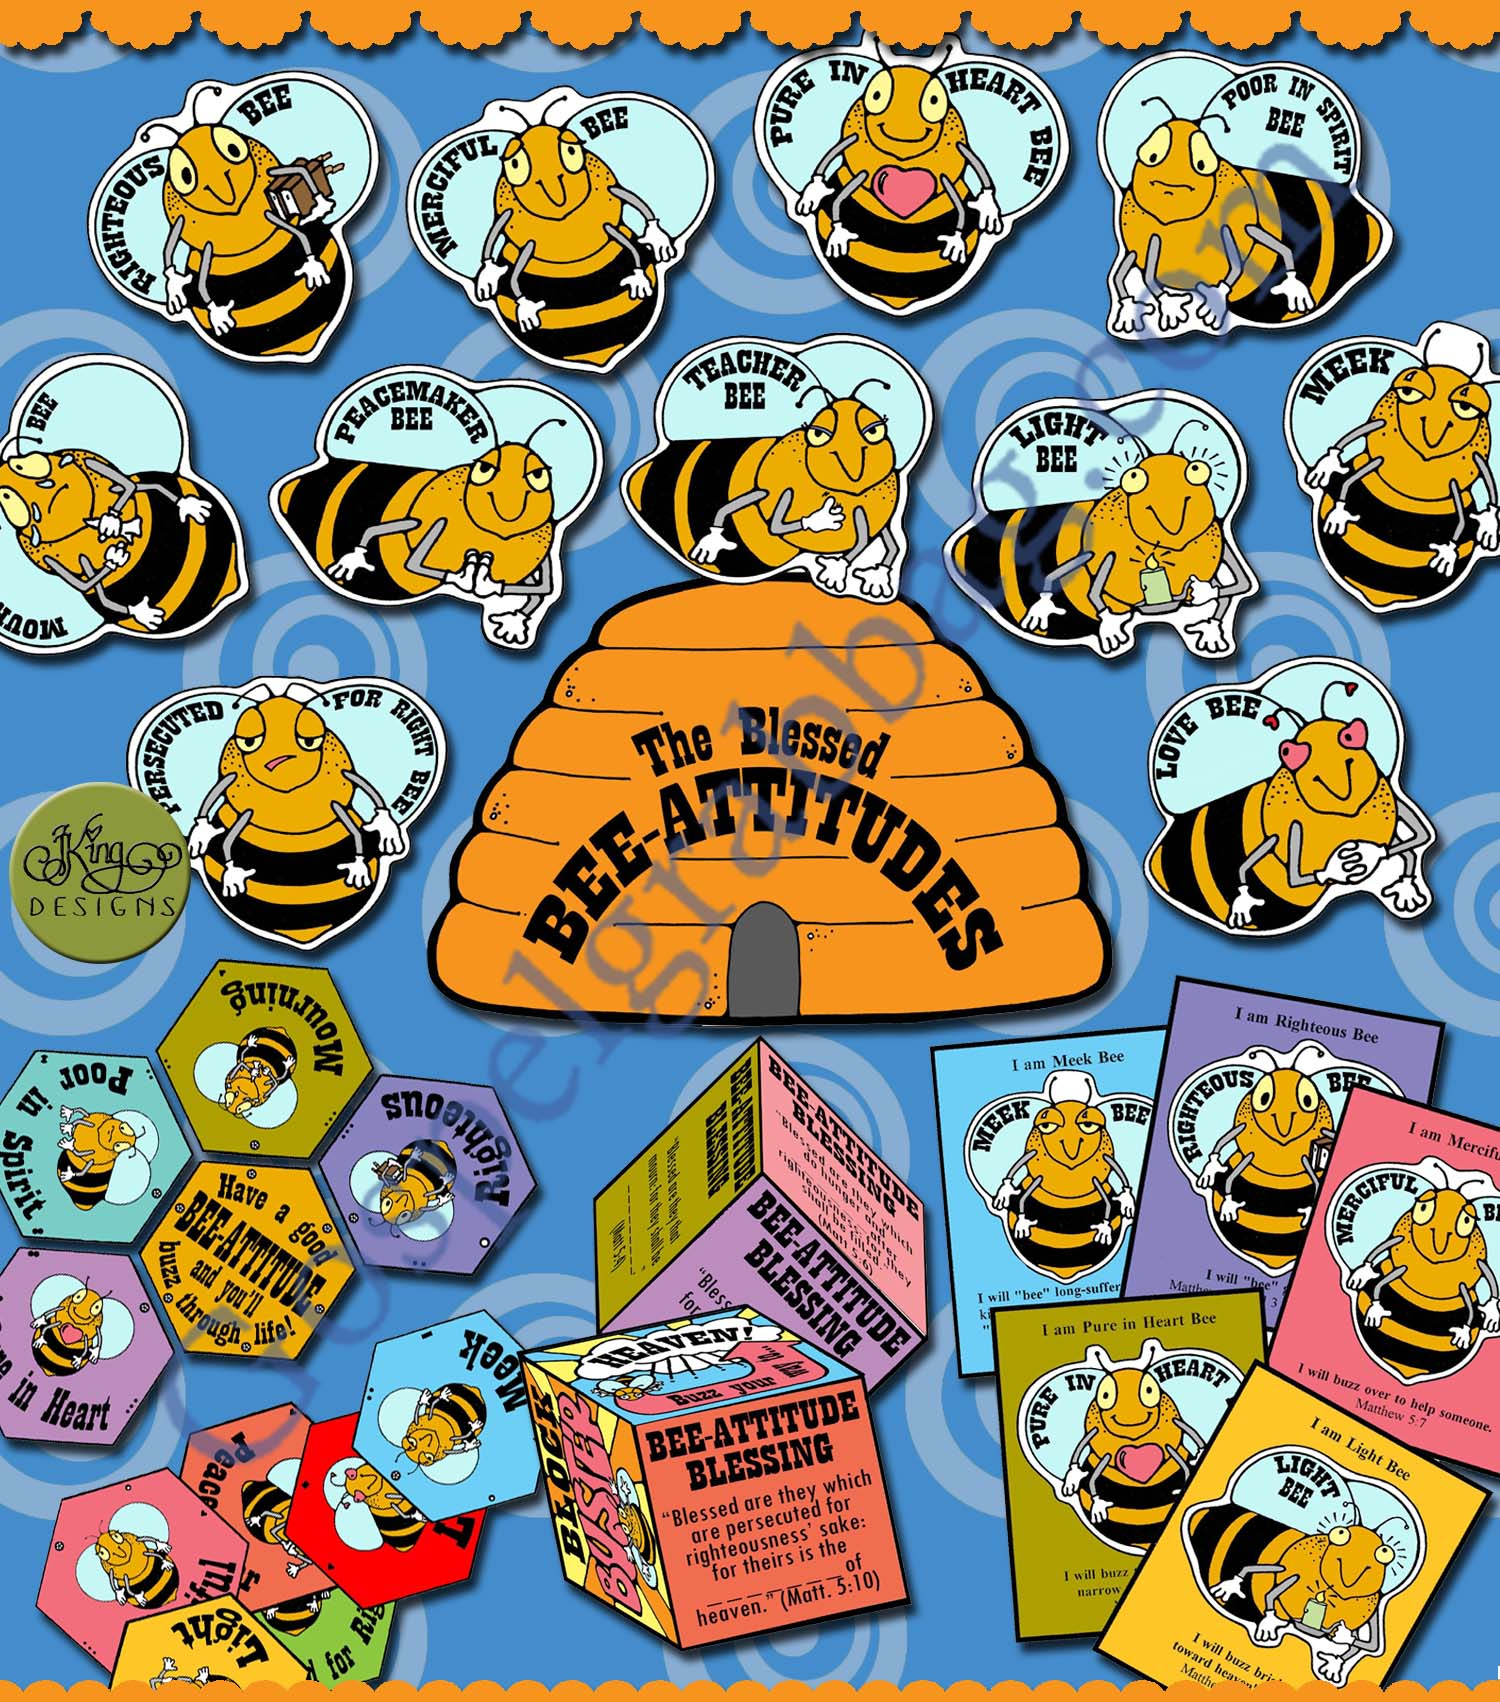 The Blessed Bee Atitudes